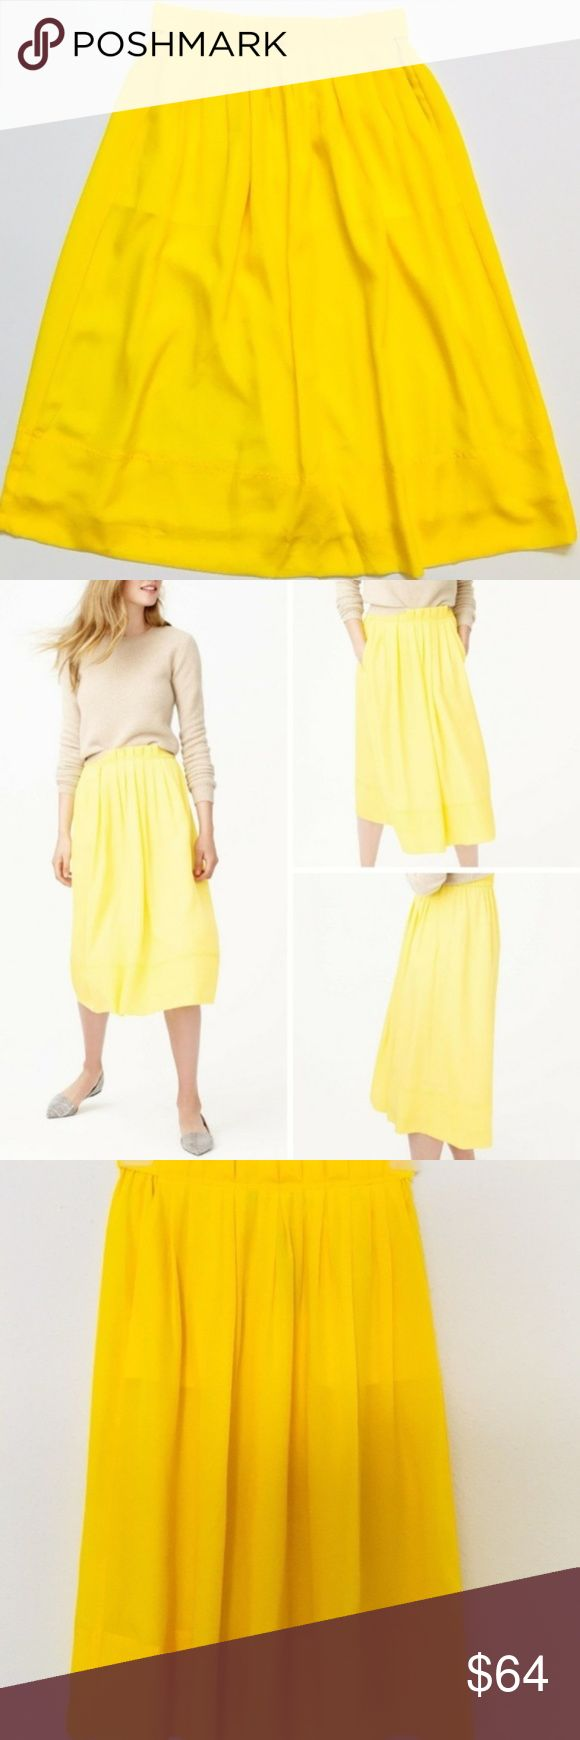 """NWT J Crew Pleated midi skirt, Yellow Lemon Size 2 NWT J Crew Pleated midi skirt, Yellow Lemon Size 2  beautiful sophisticated sheath dress with lace inset.  Featured with 2 side pockets.   Brand: J. Crew  Size: 2  Material: 100% Polyester  Color: Lemon  length: Midi-Calf  Condition: New with Tags  Garment Care: Machine Wash  Approximate Flat Measurements: Waist: ~ 13"""" Length: ~ 28.75"""" J. Crew Skirts Midi"""